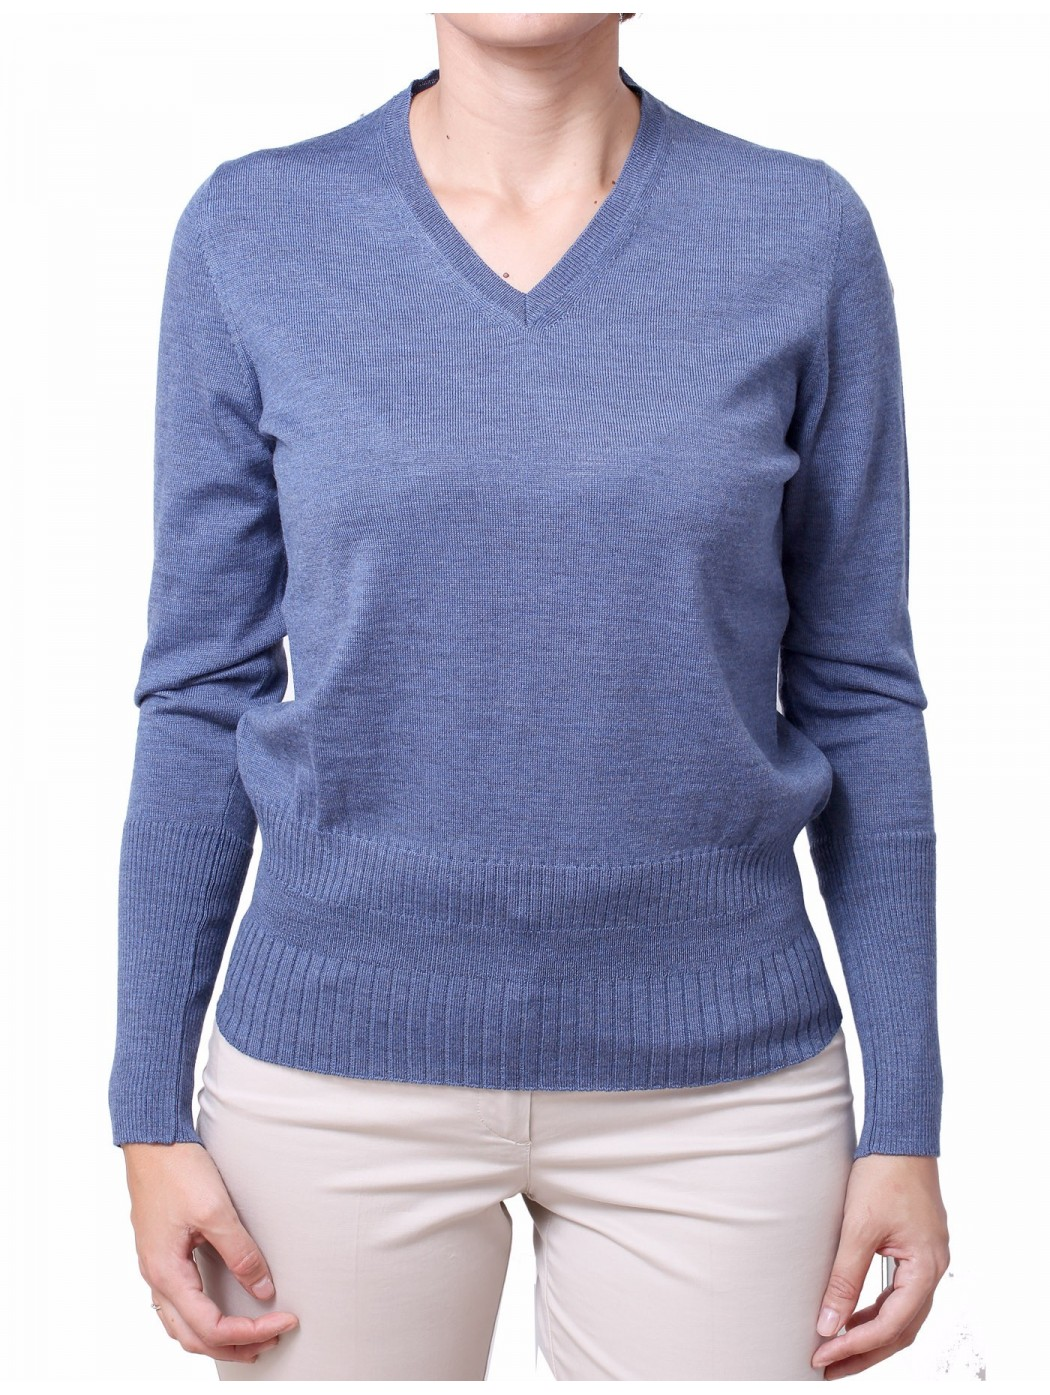 V-neck sweater with studs